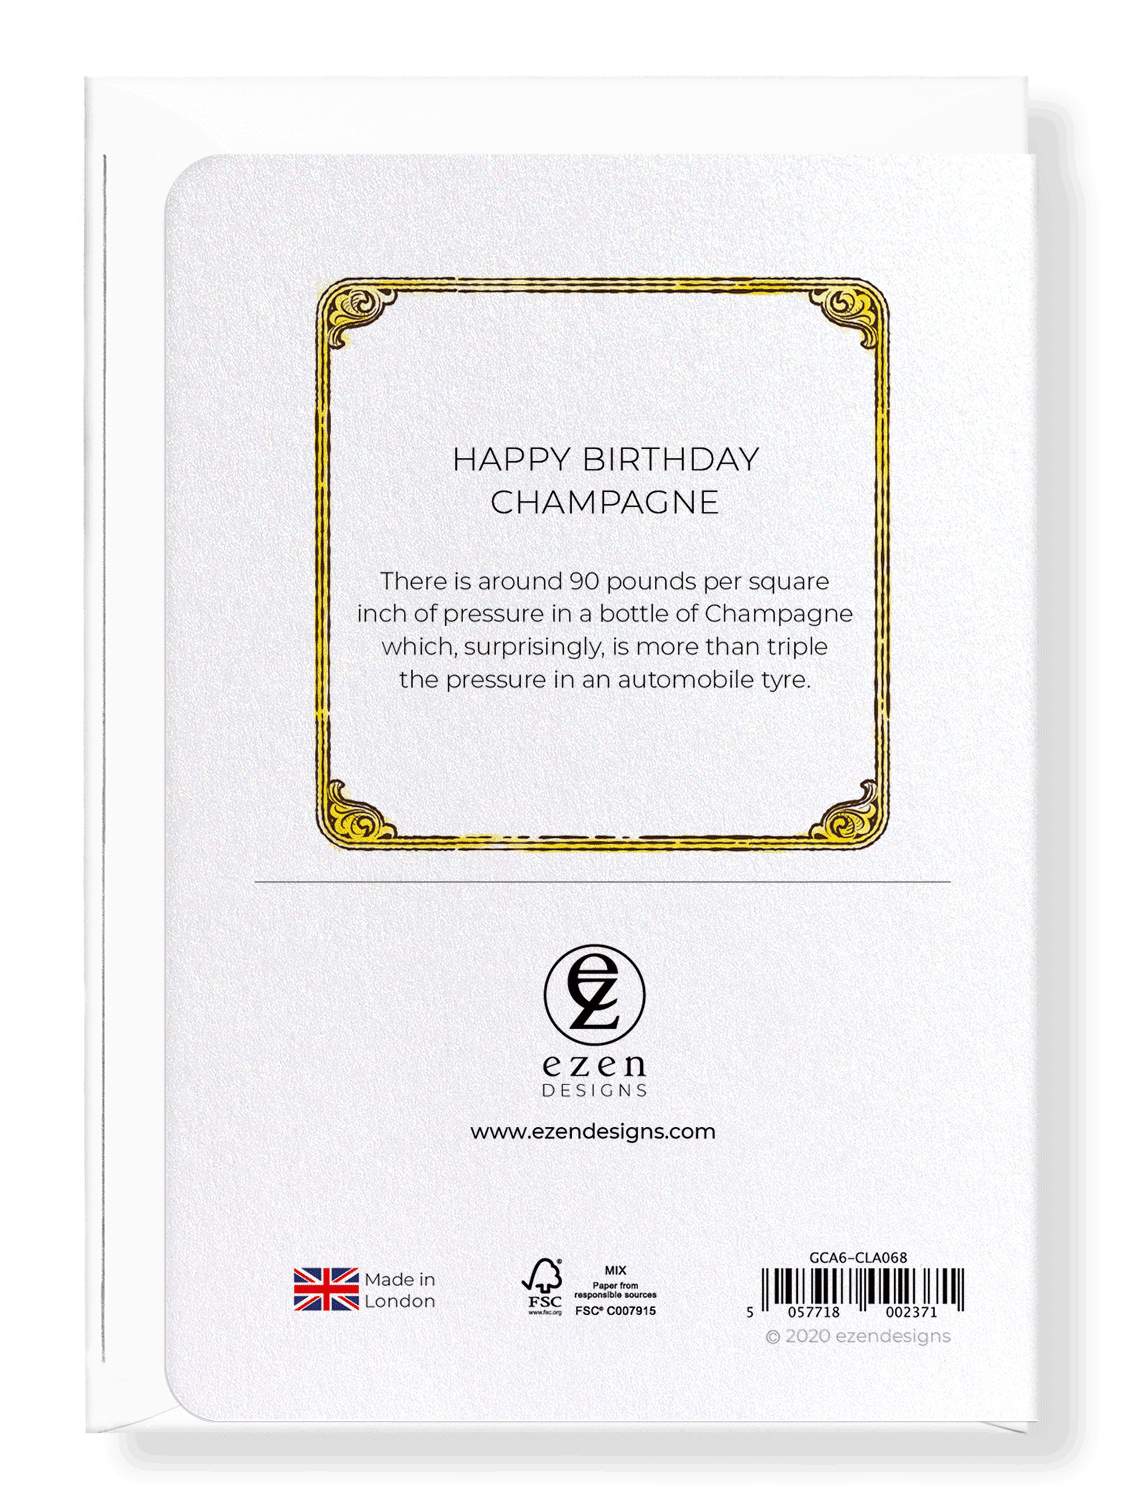 Ezen Designs - Happy birthday champagne - Greeting Card - Back